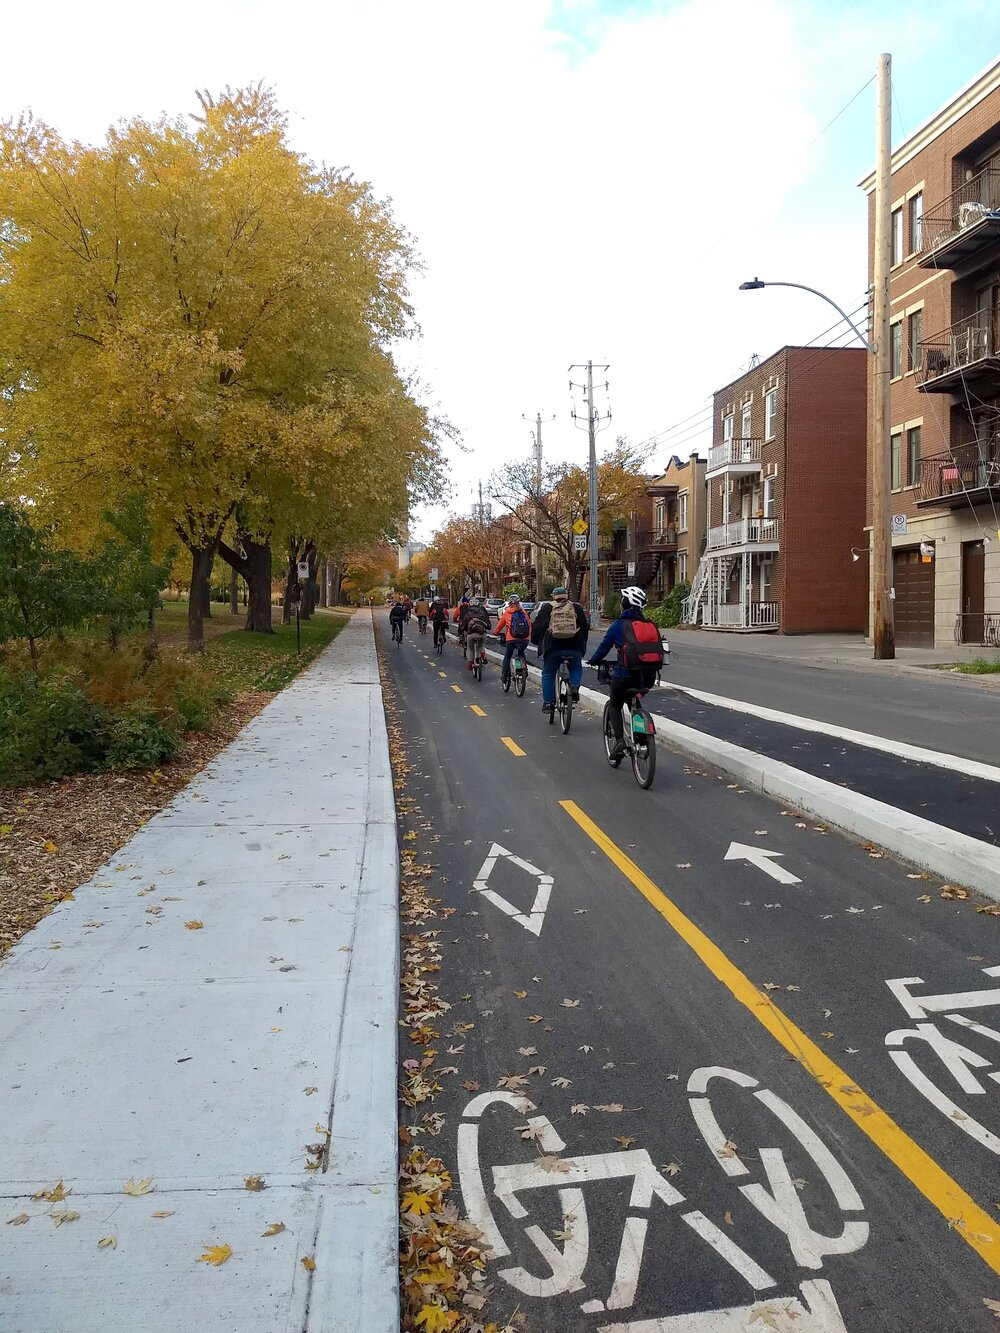 A segment of the 110-mile bike network Montreal plans to complete in the next 10 years. Photo: Jon Kaplan